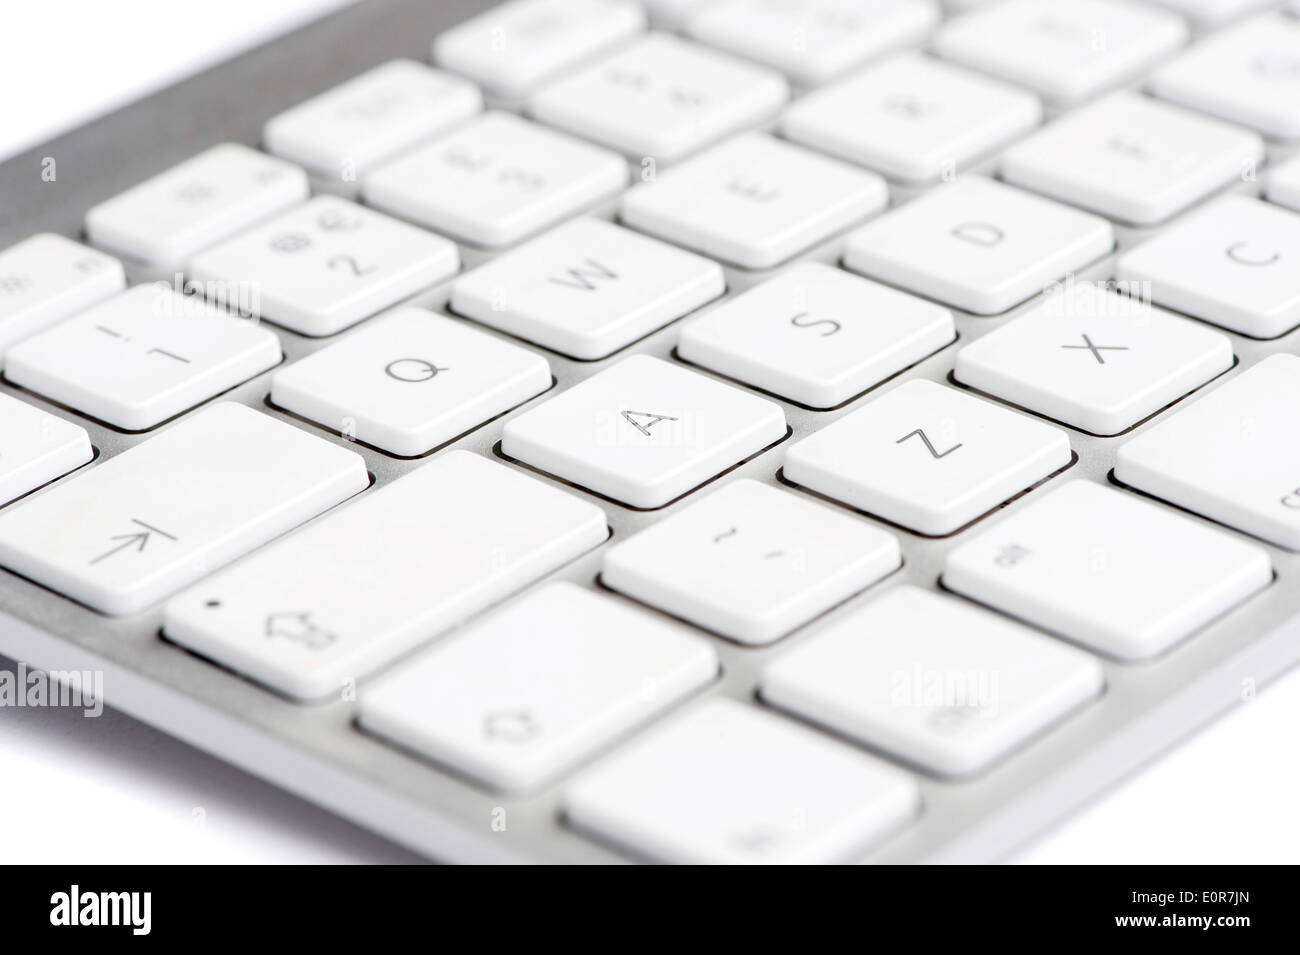 Apple mac white Keyboard focused on the letter A - Stock Image